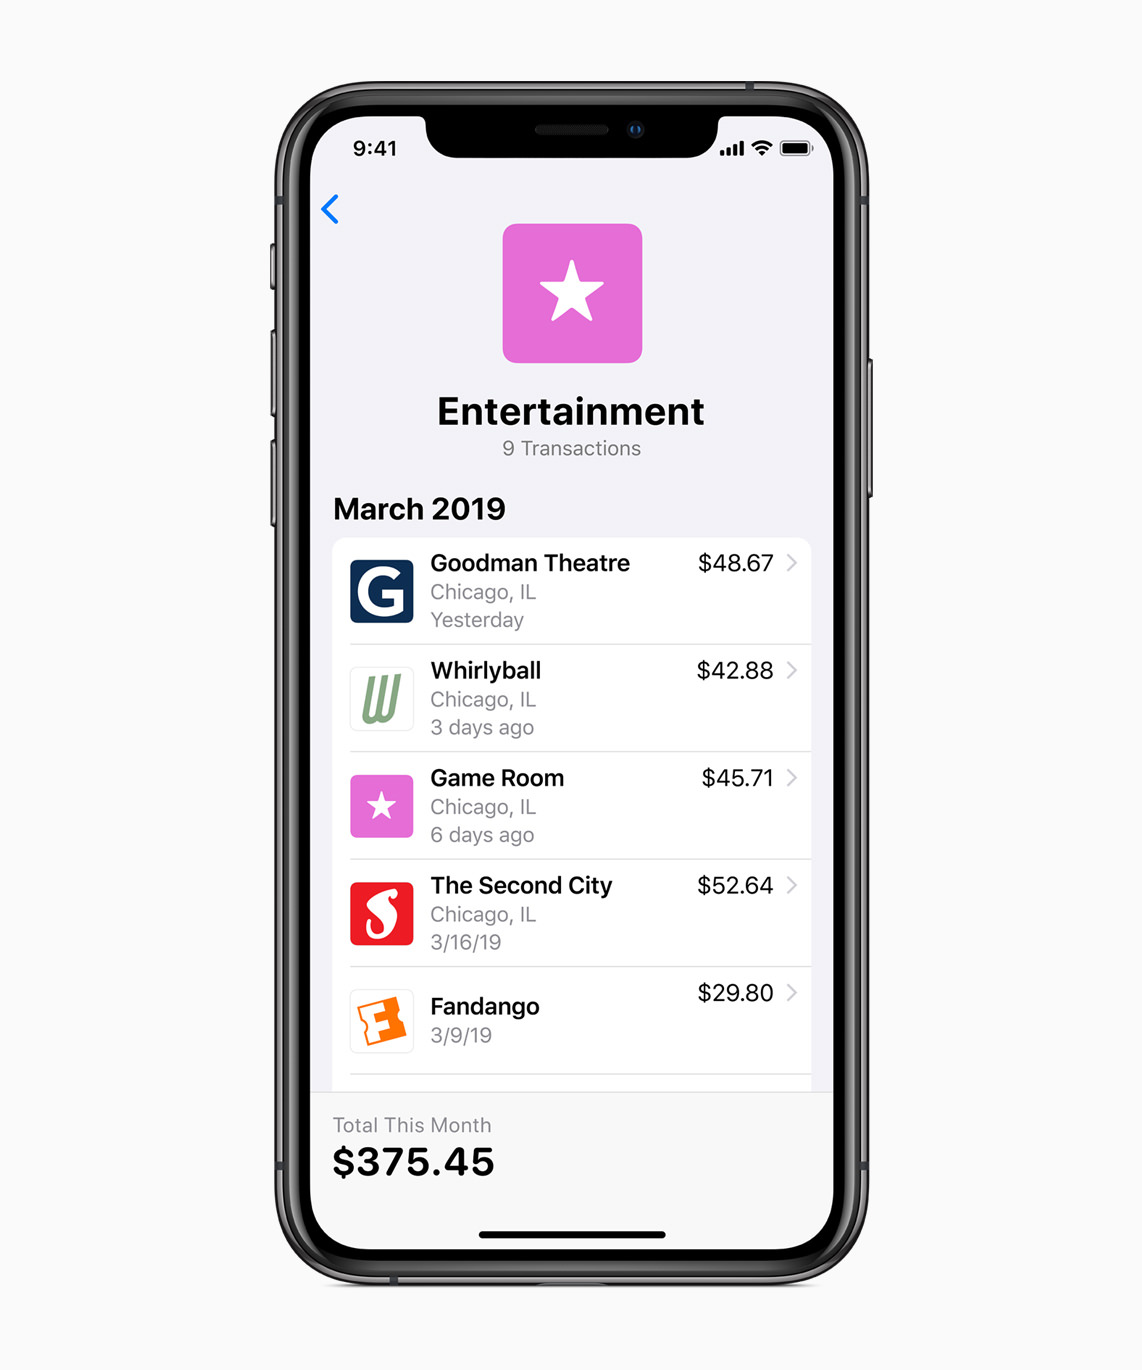 Apple-Card_iPhoneXS-Entertainment_032519